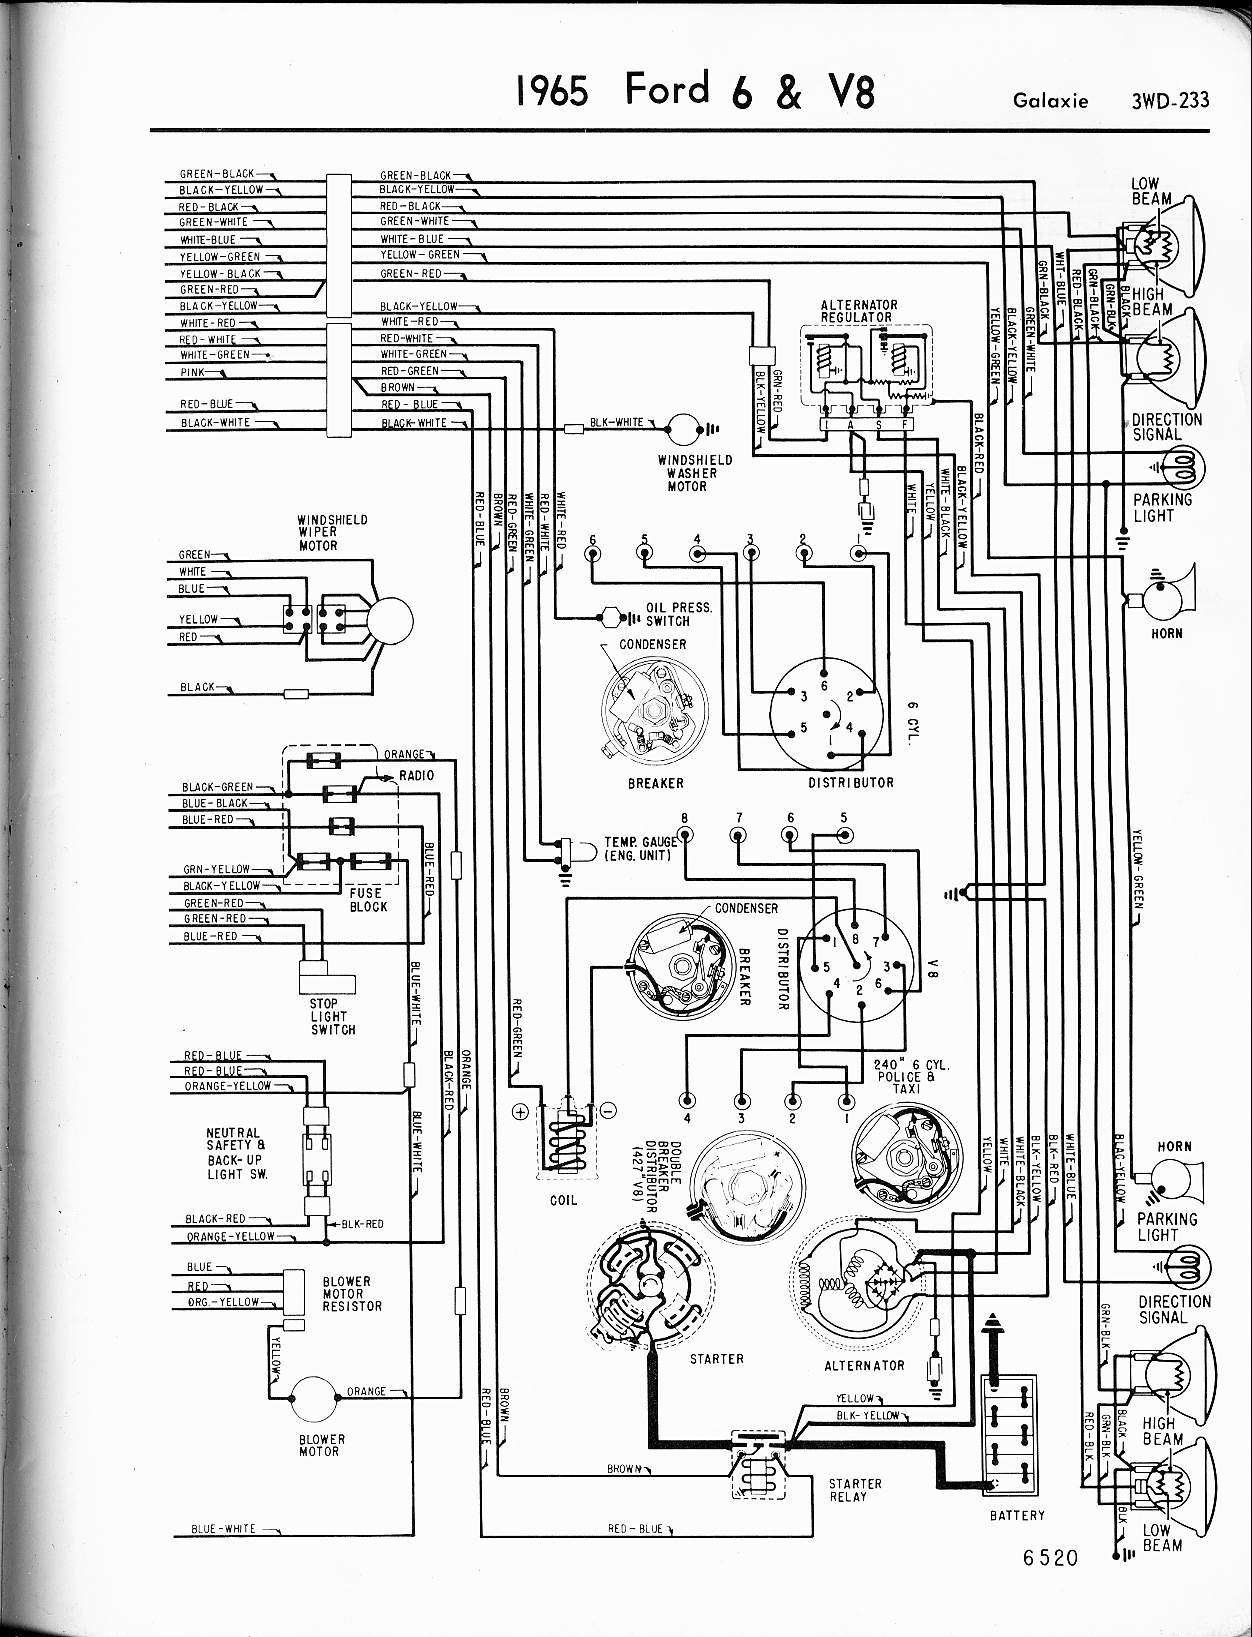 1959 ford truck wiring diagrams wiring diagram third levelford wire diagrams wiring diagram todays 1959 ford f100 wiring diagram 1959 ford truck wiring diagrams